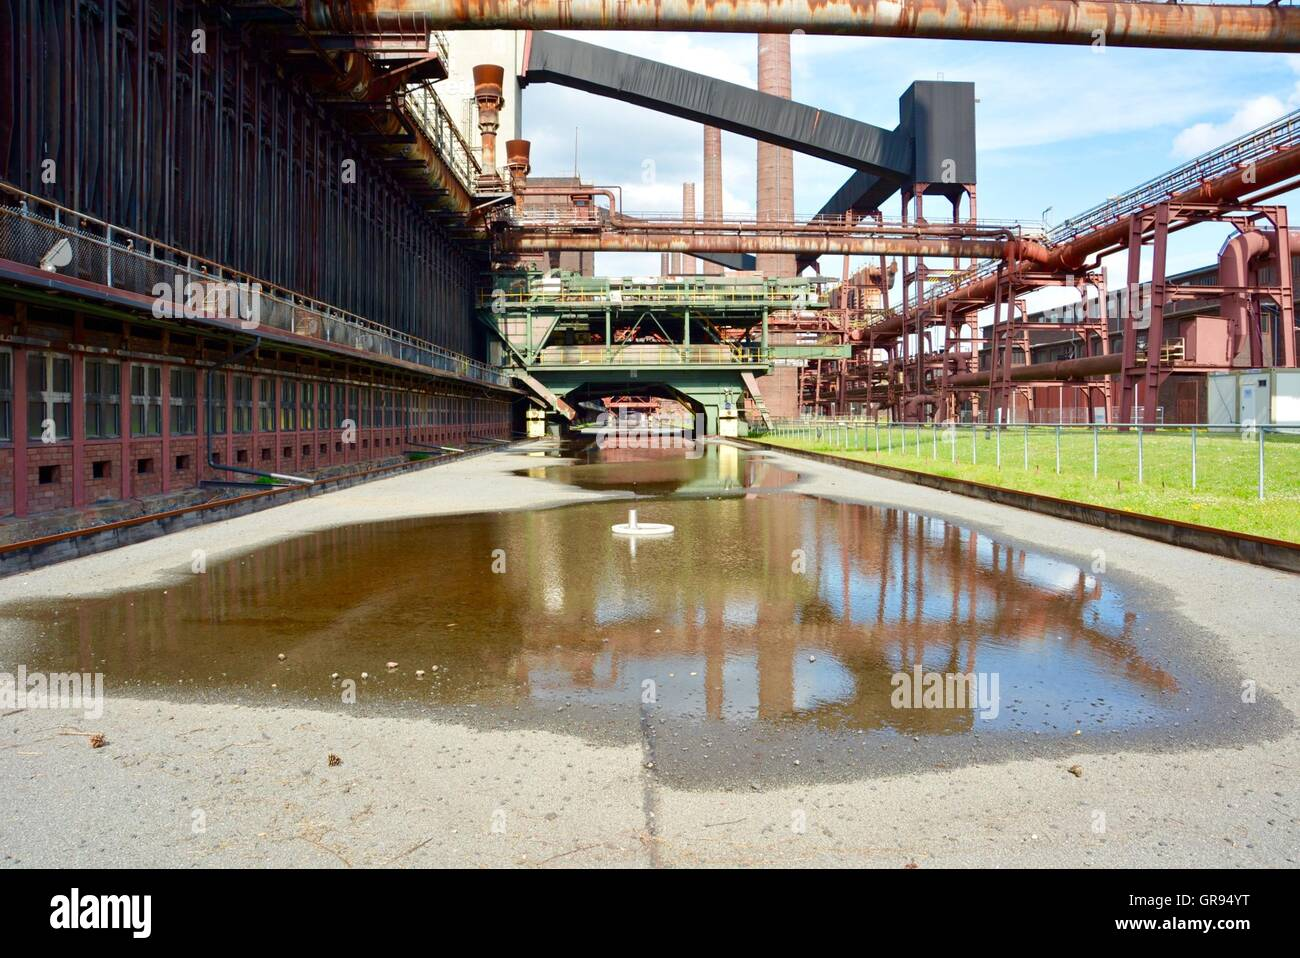 Puddle On Footpath At Zollverein Coal Mine Industrial Complex - Stock Image